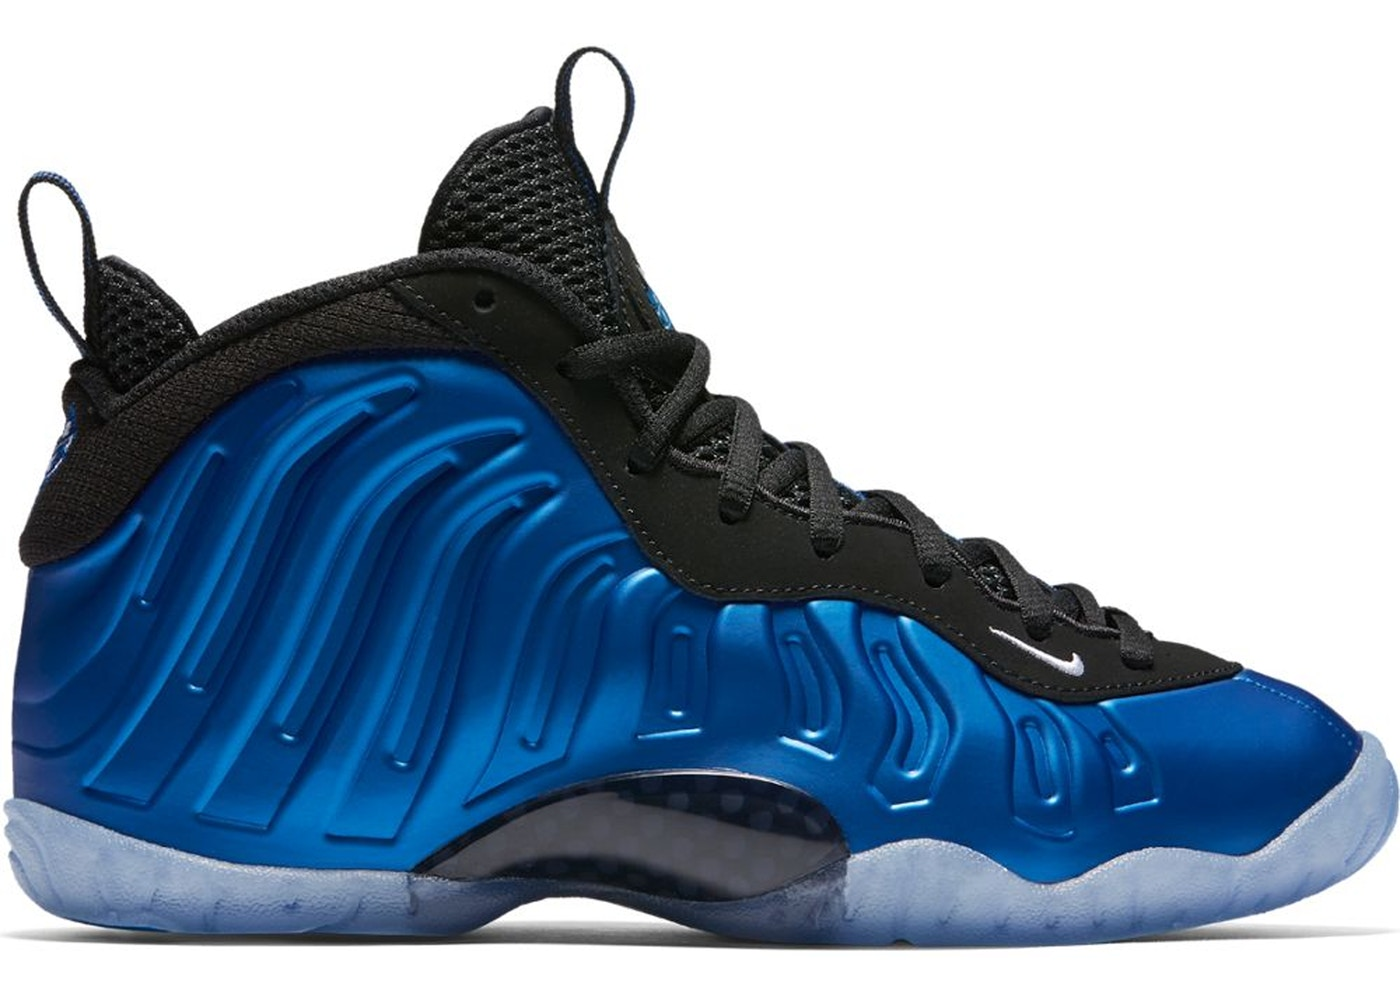 huge discount d9311 e09ec Air Foamposite One Royal Blue XX 20th Anniversary 2017 (GS)